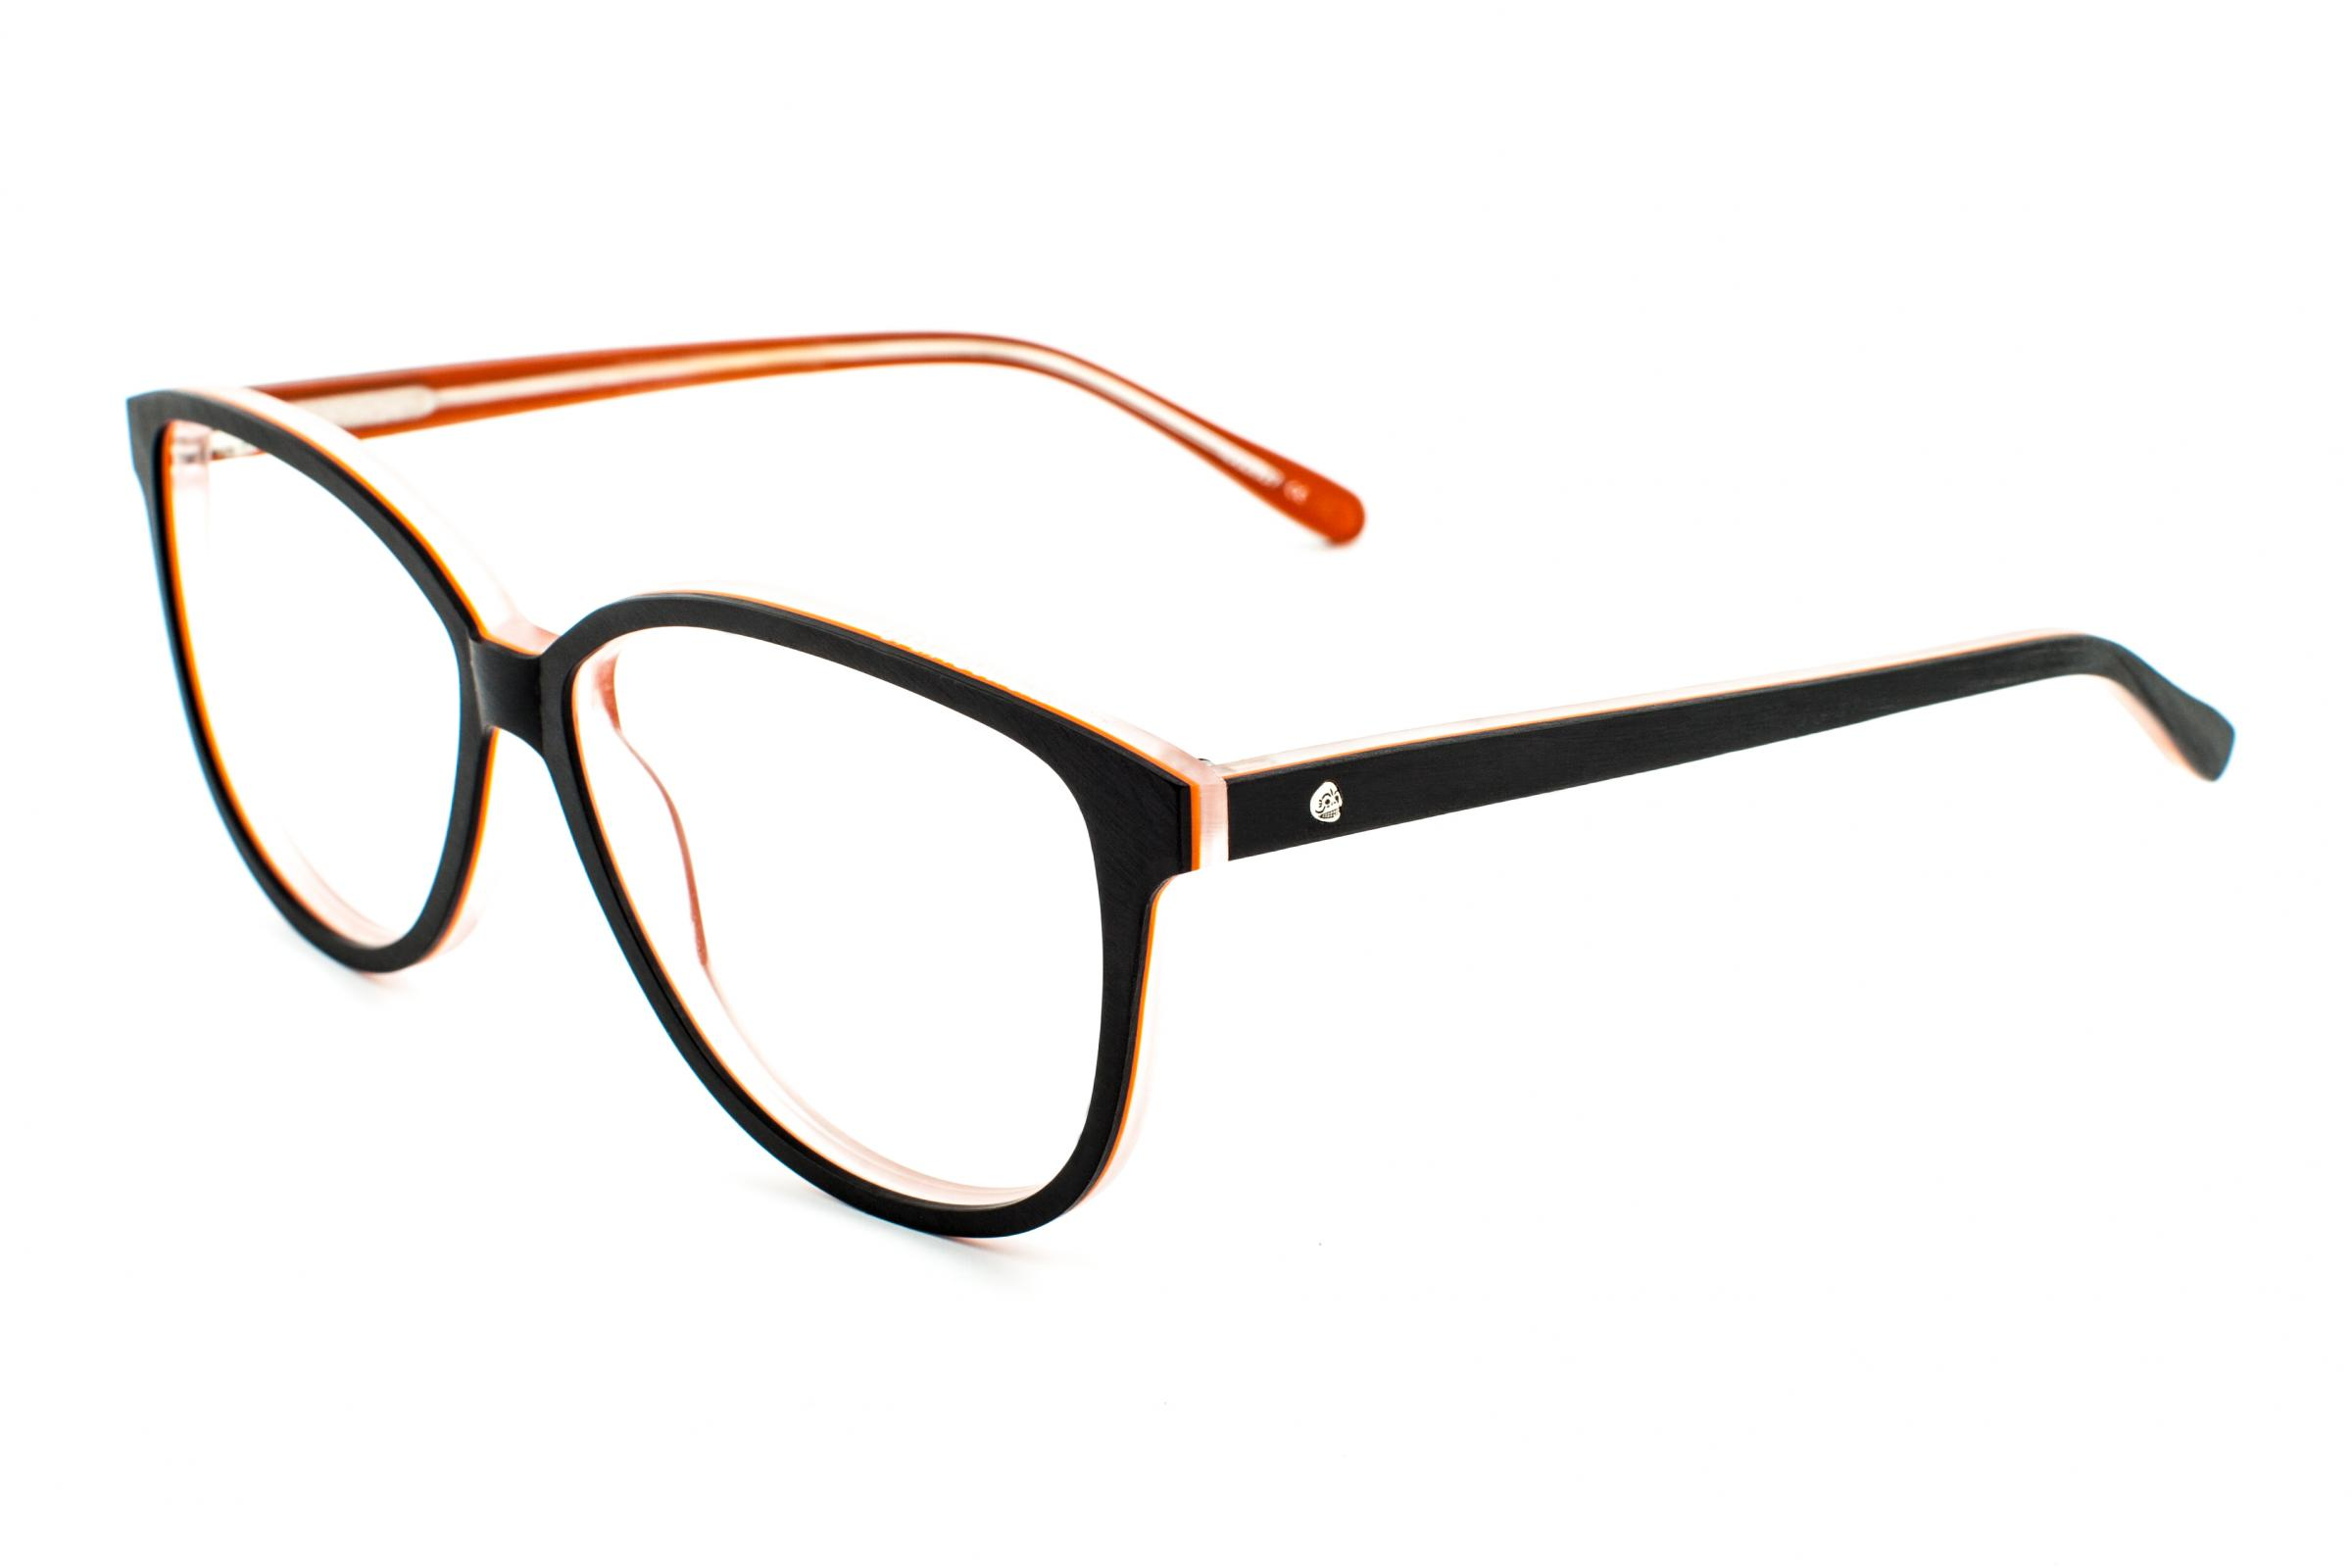 WIN designer glasses while keeping an eye out for Sidcup hospital ...